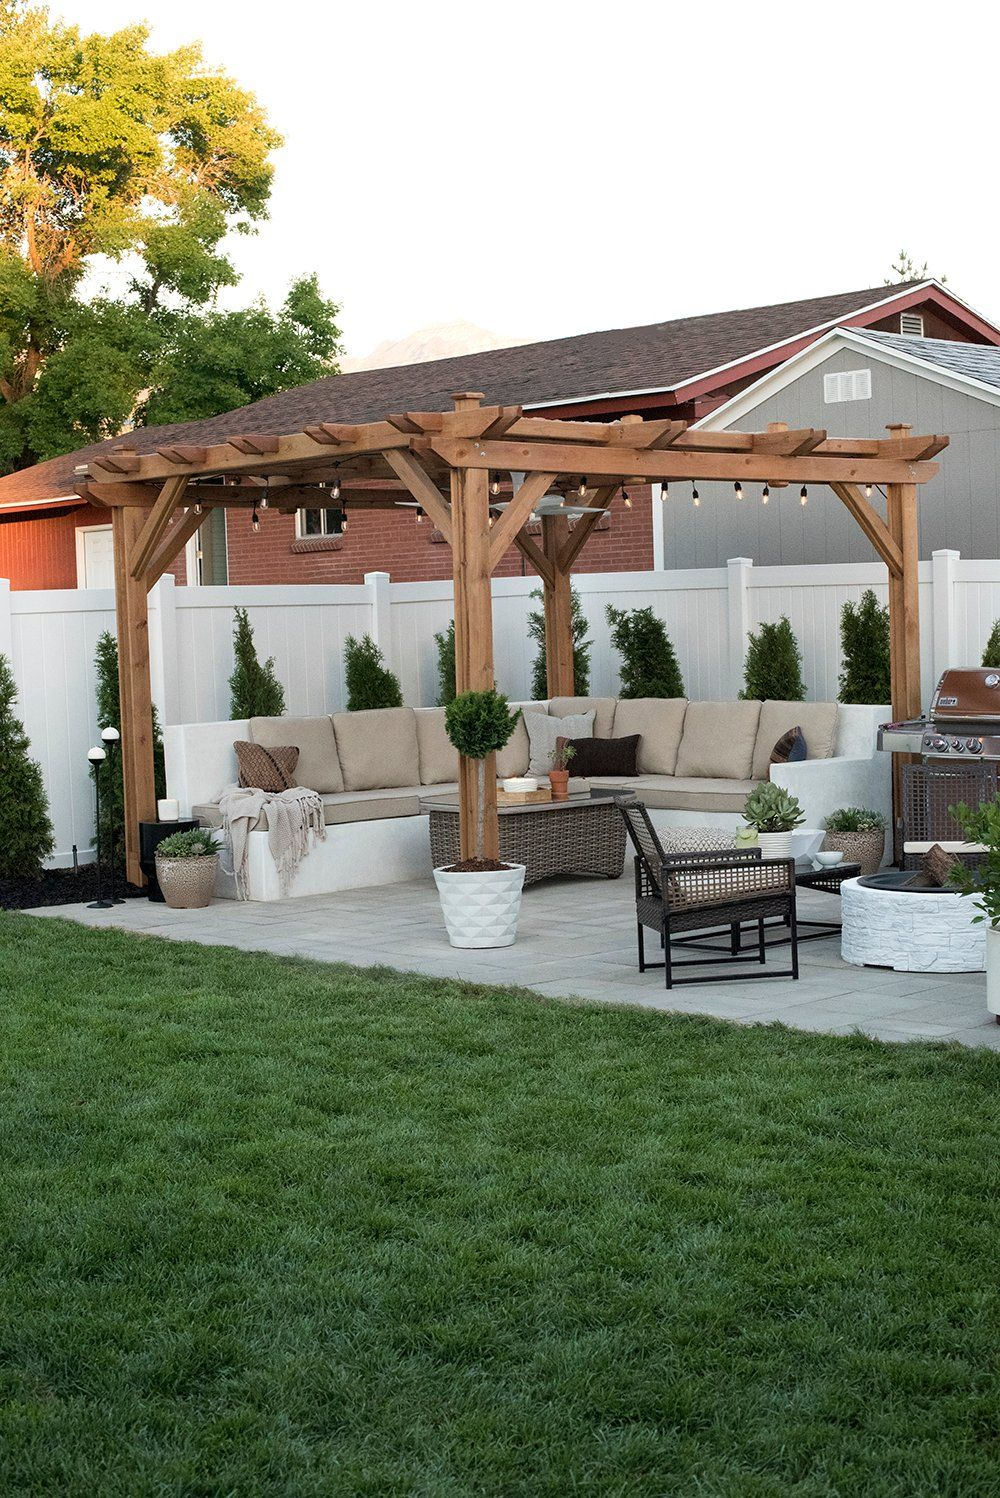 Our Backyard Reveal & Get the Look - Room for Tuesday ... on Small Backyard Entertainment Area Ideas id=60042